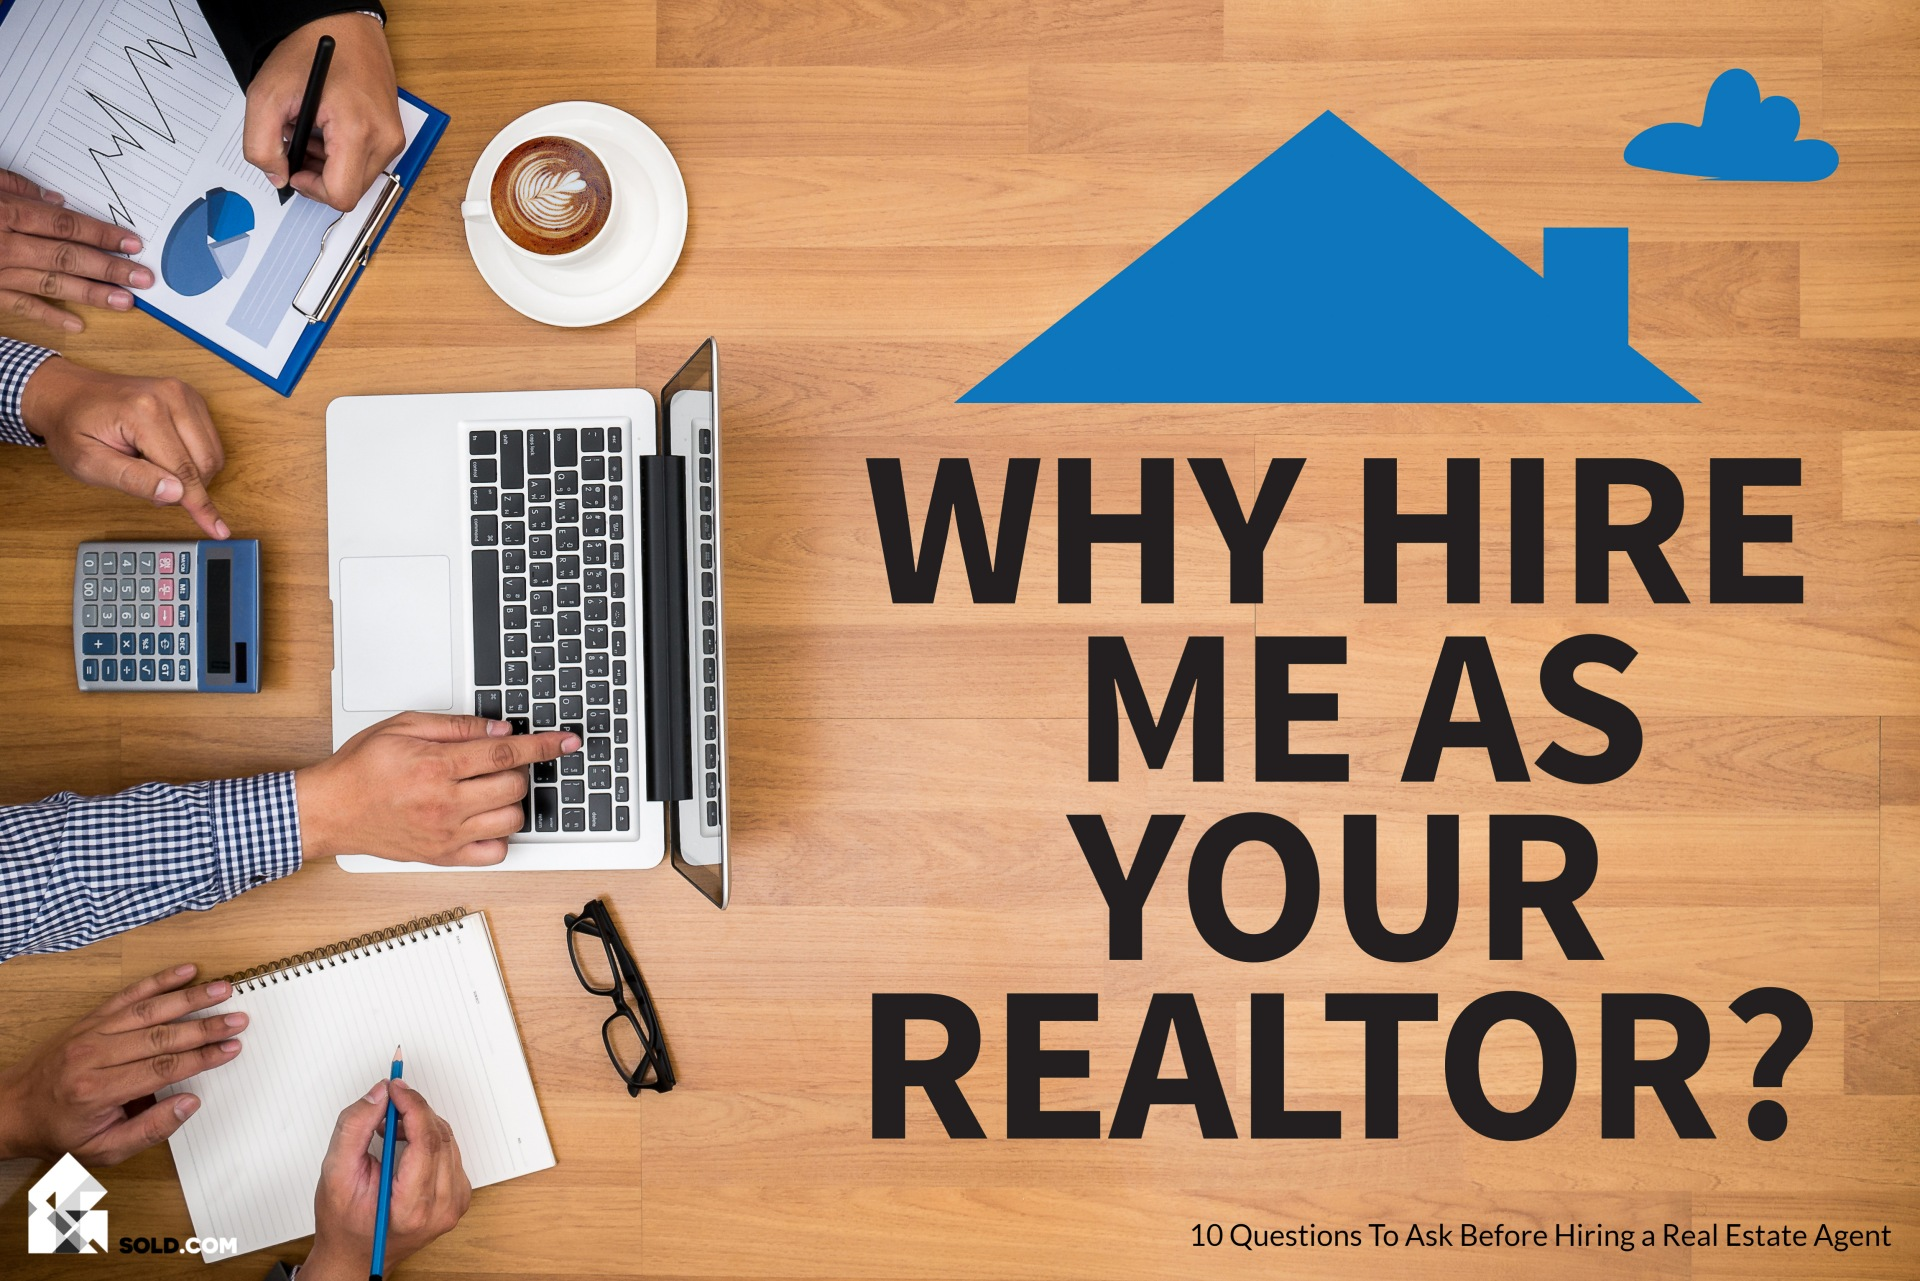 10 Questions to Ask Before Hiring a Real Estate Agent